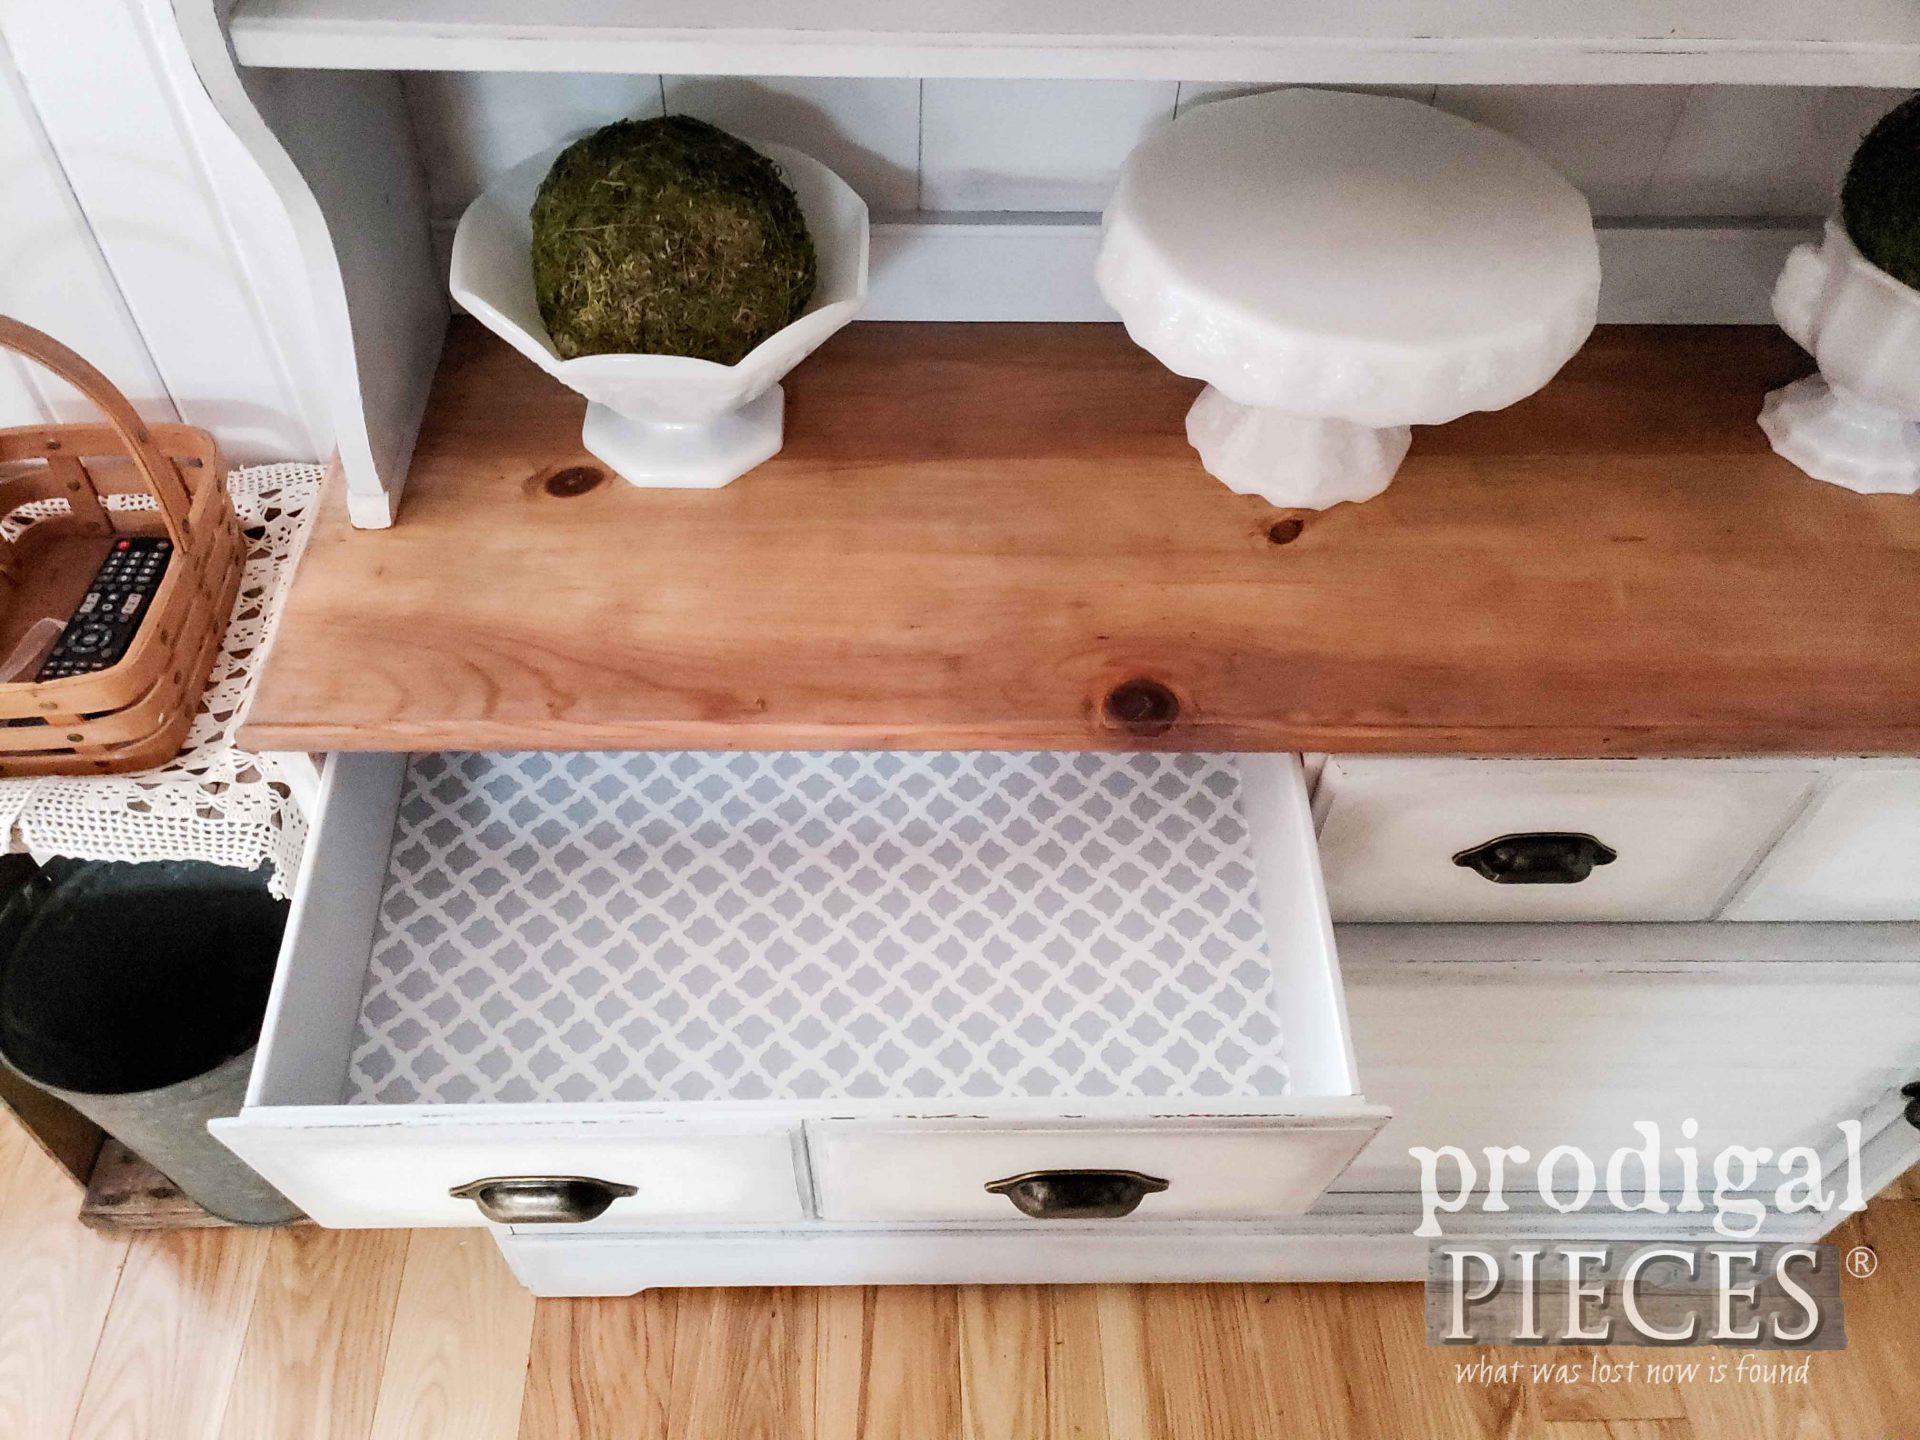 Farmhouse Hutch with Paper Lined Drawers by Larissa of Prodigal Pieces | prodigalpieces.com #prodigalpieces #farmhouse #home #diy #homedecor #furniture